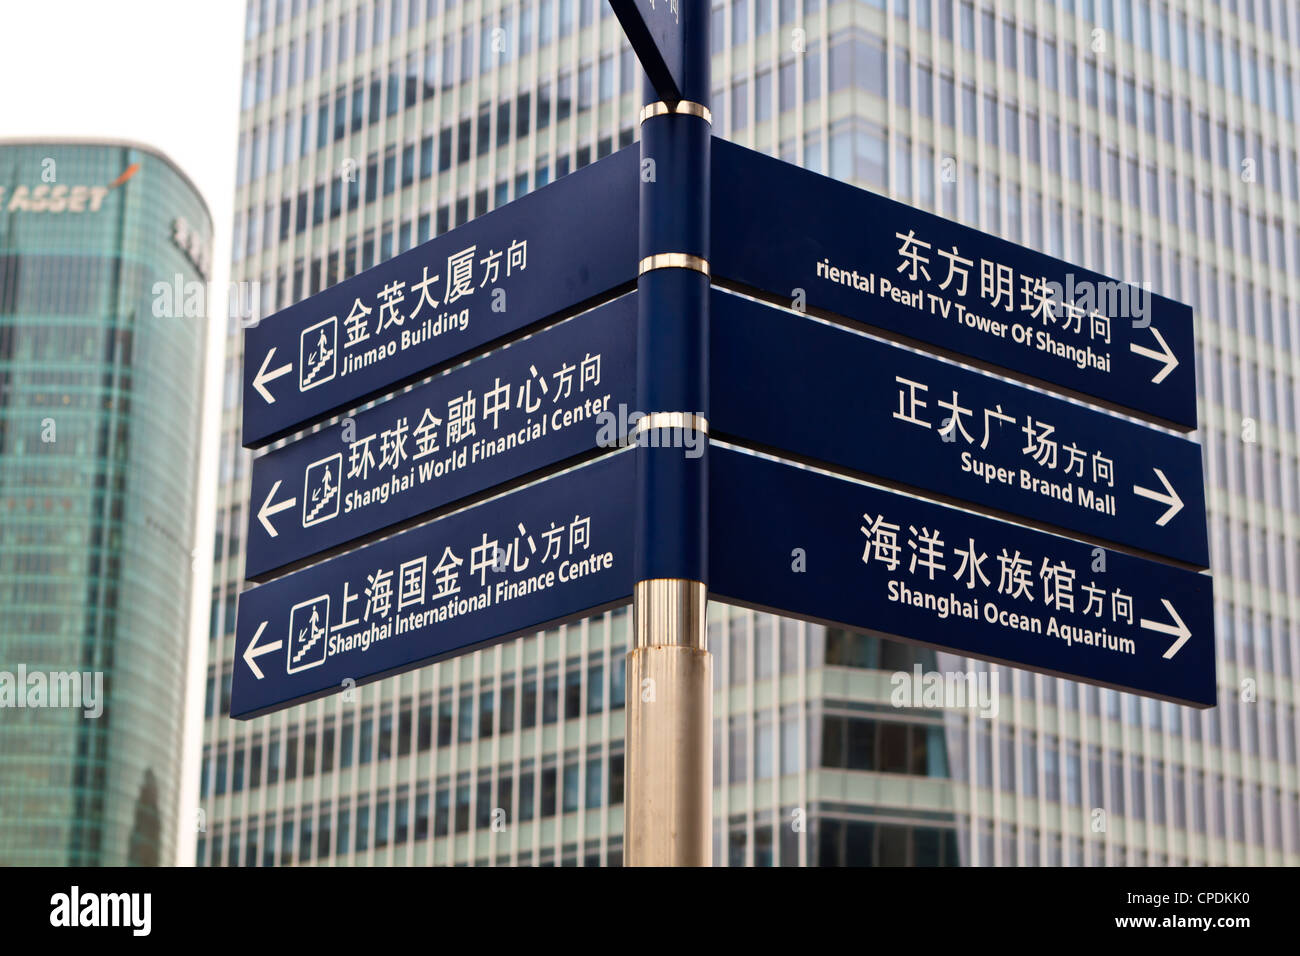 Street signs in Pudong, Shanghai, China, Asia - Stock Image